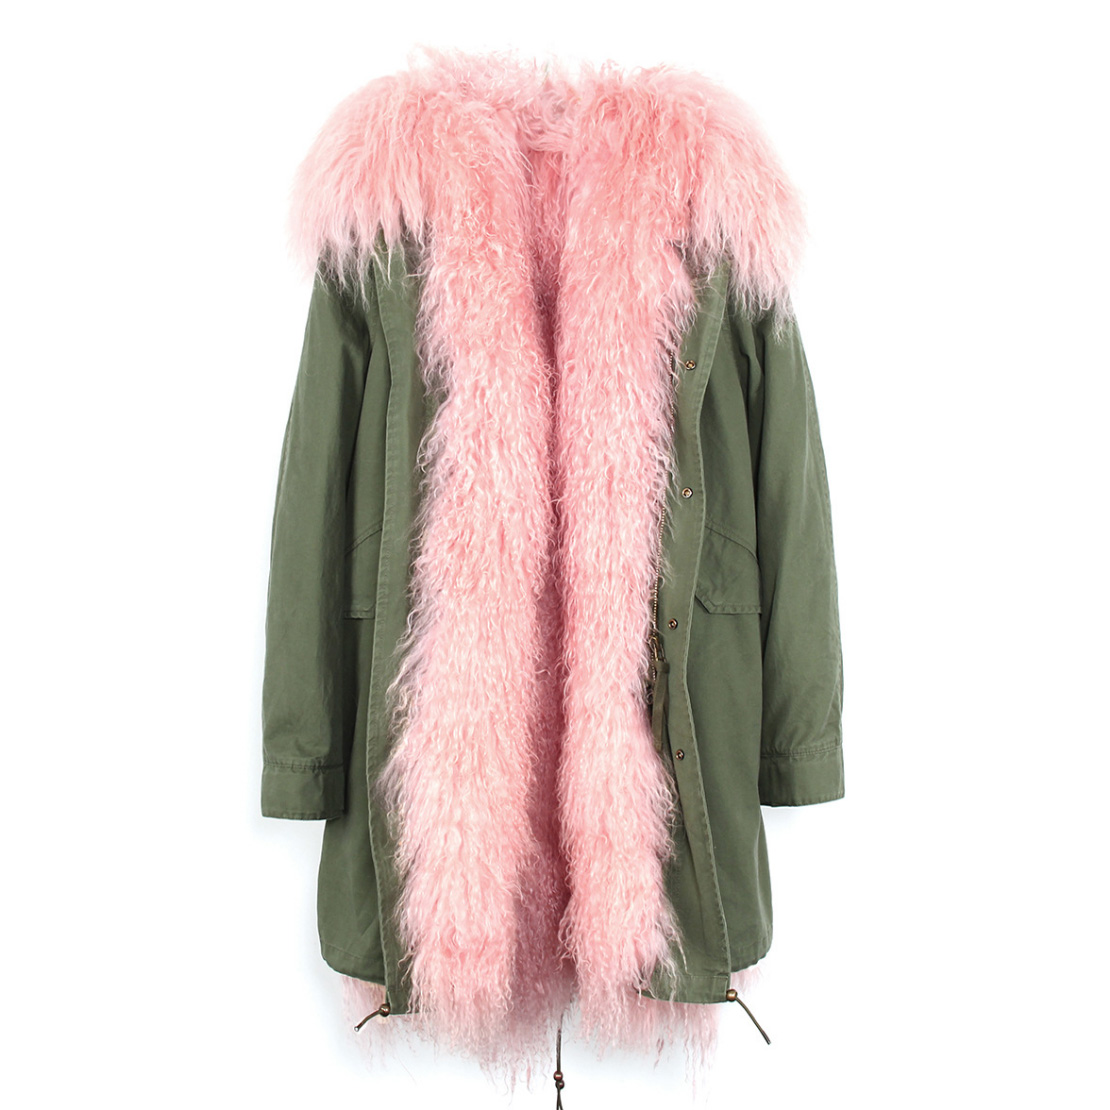 Tibet Sheep Fur Hooded Parka 119 Details 7